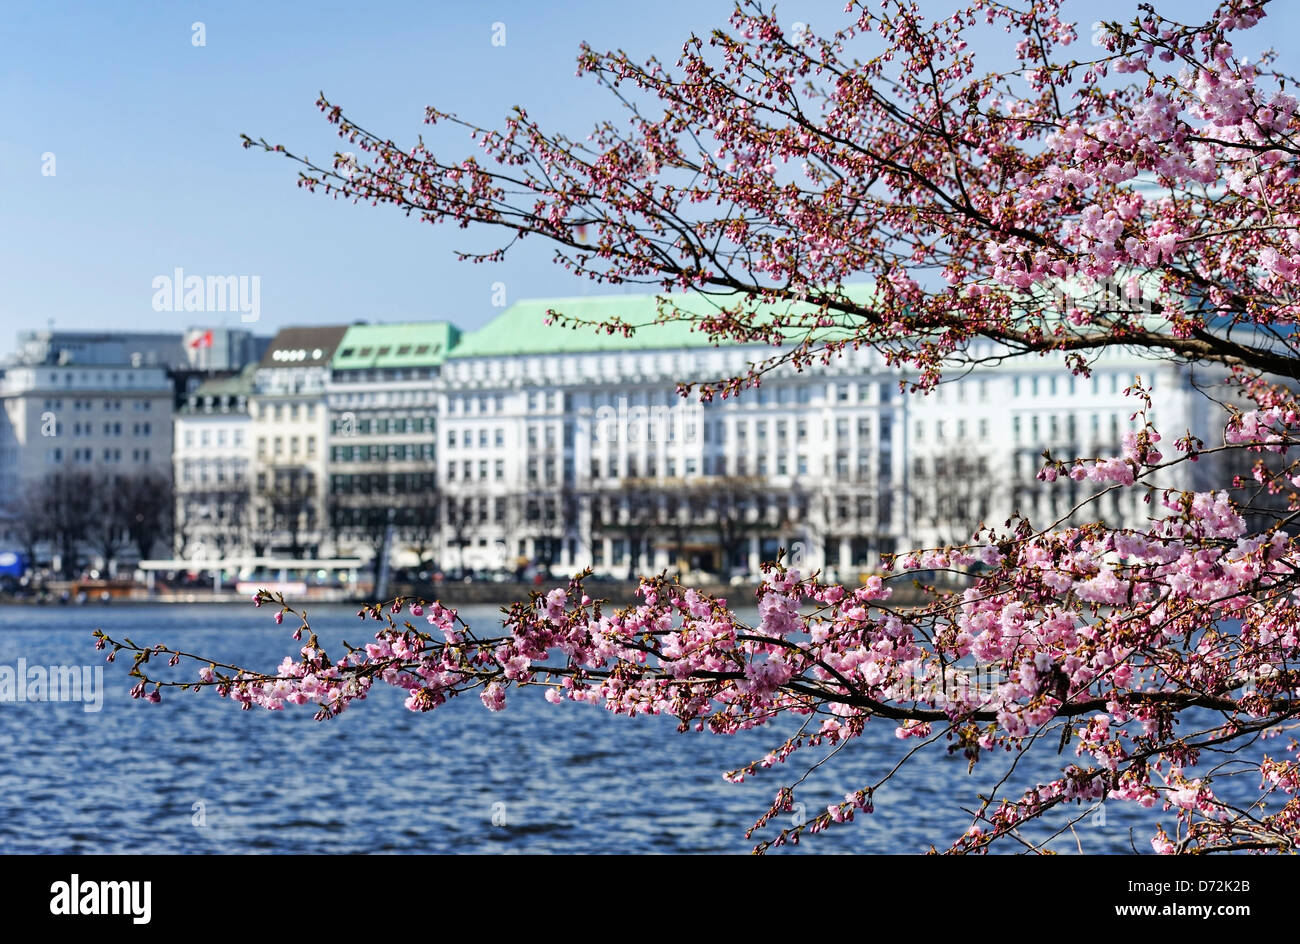 tree in four seasons spring stockfotos tree in four seasons spring bilder alamy. Black Bedroom Furniture Sets. Home Design Ideas